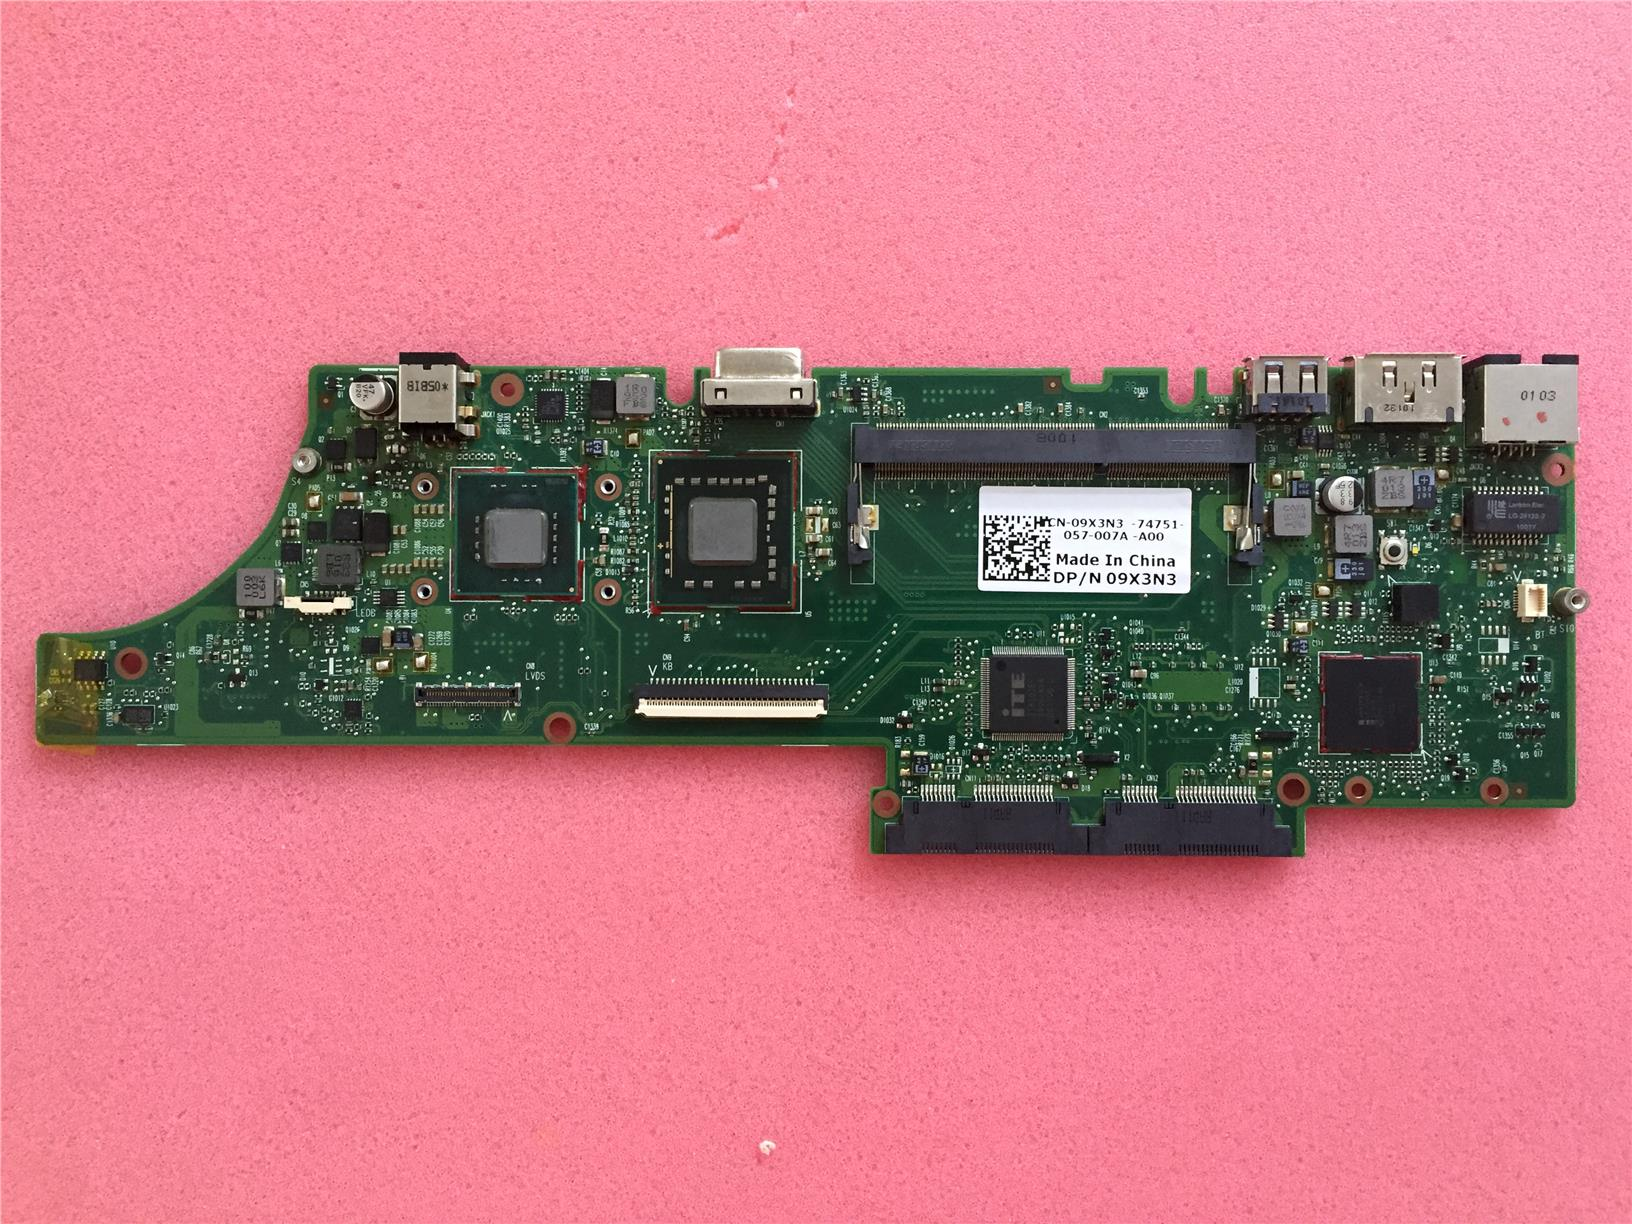 Dell Vostro V13 Motherboard System Board with Intel 1.4GHz 9X3N3 09X3N